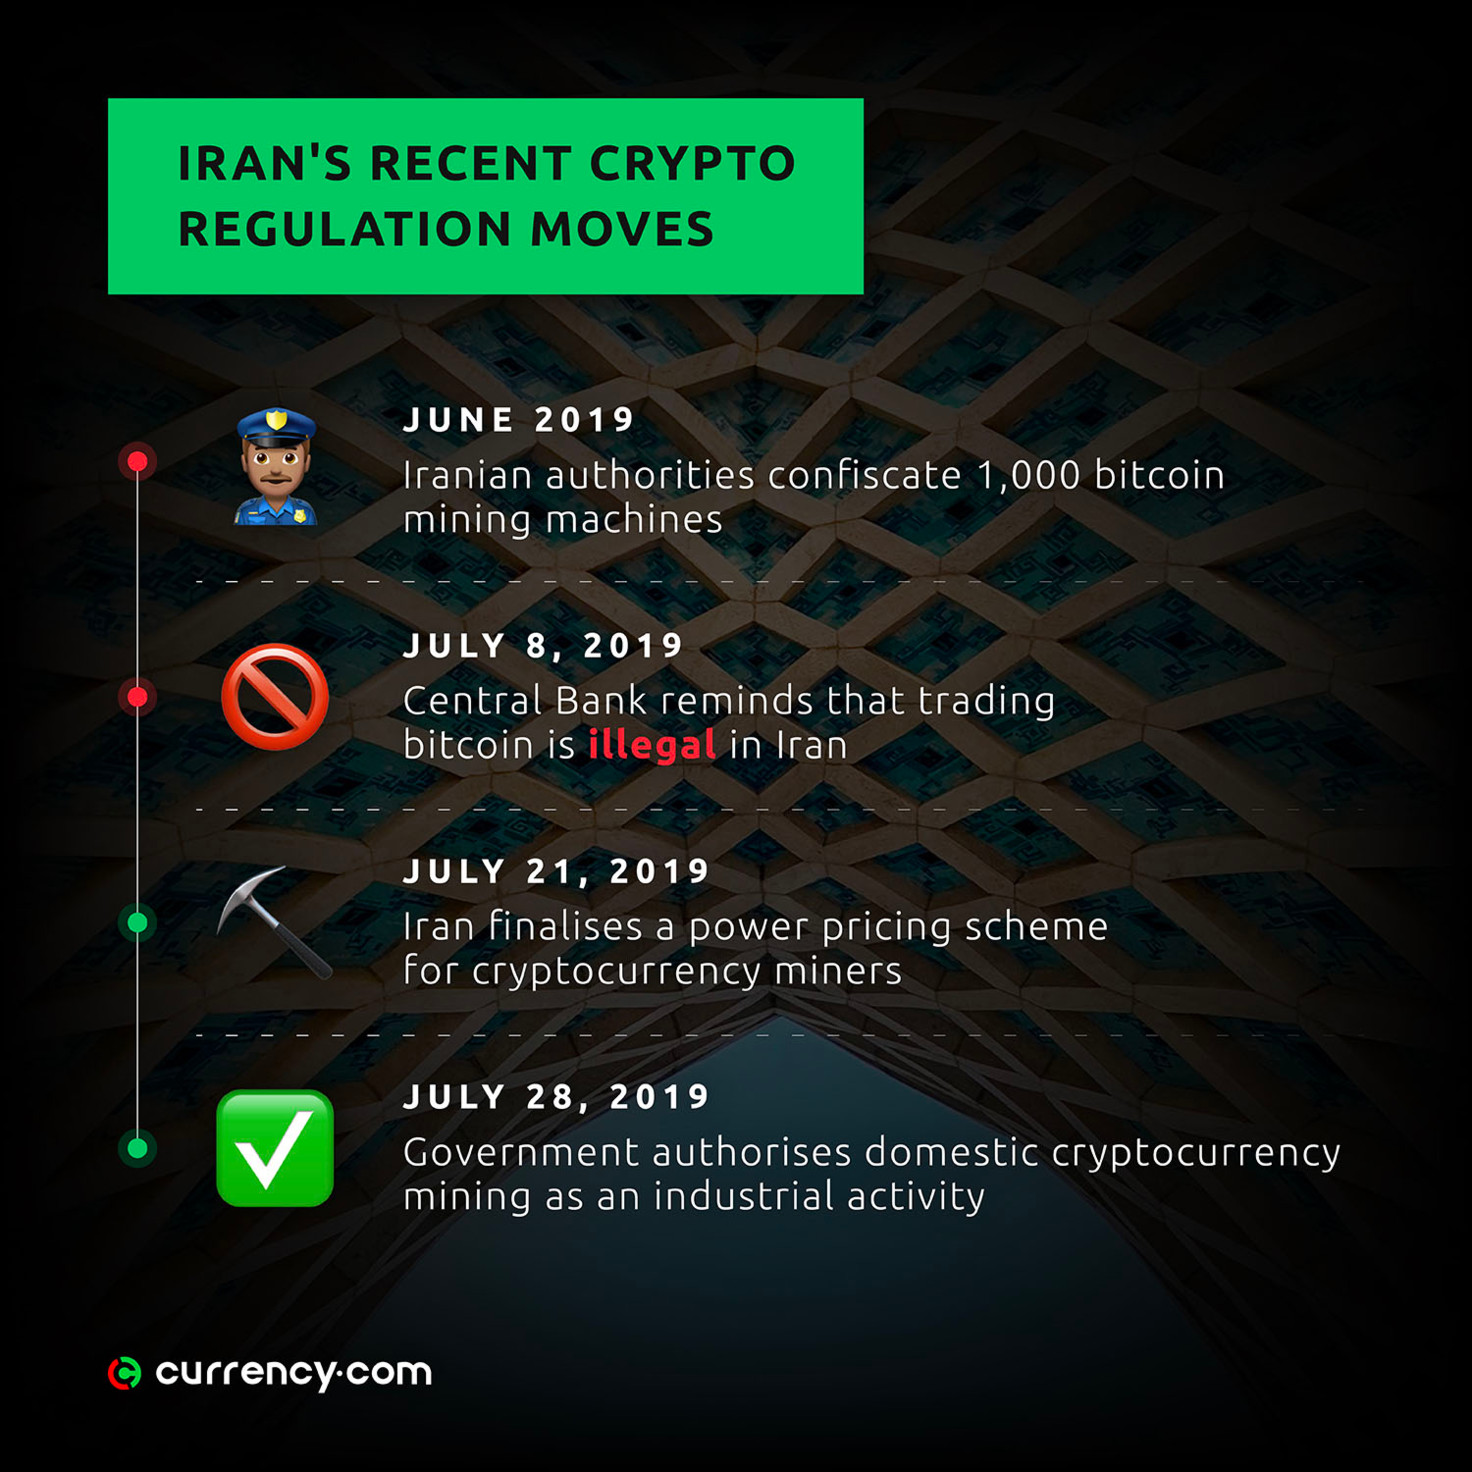 Crypto Mining Recognized As Industrial Activity in Iran